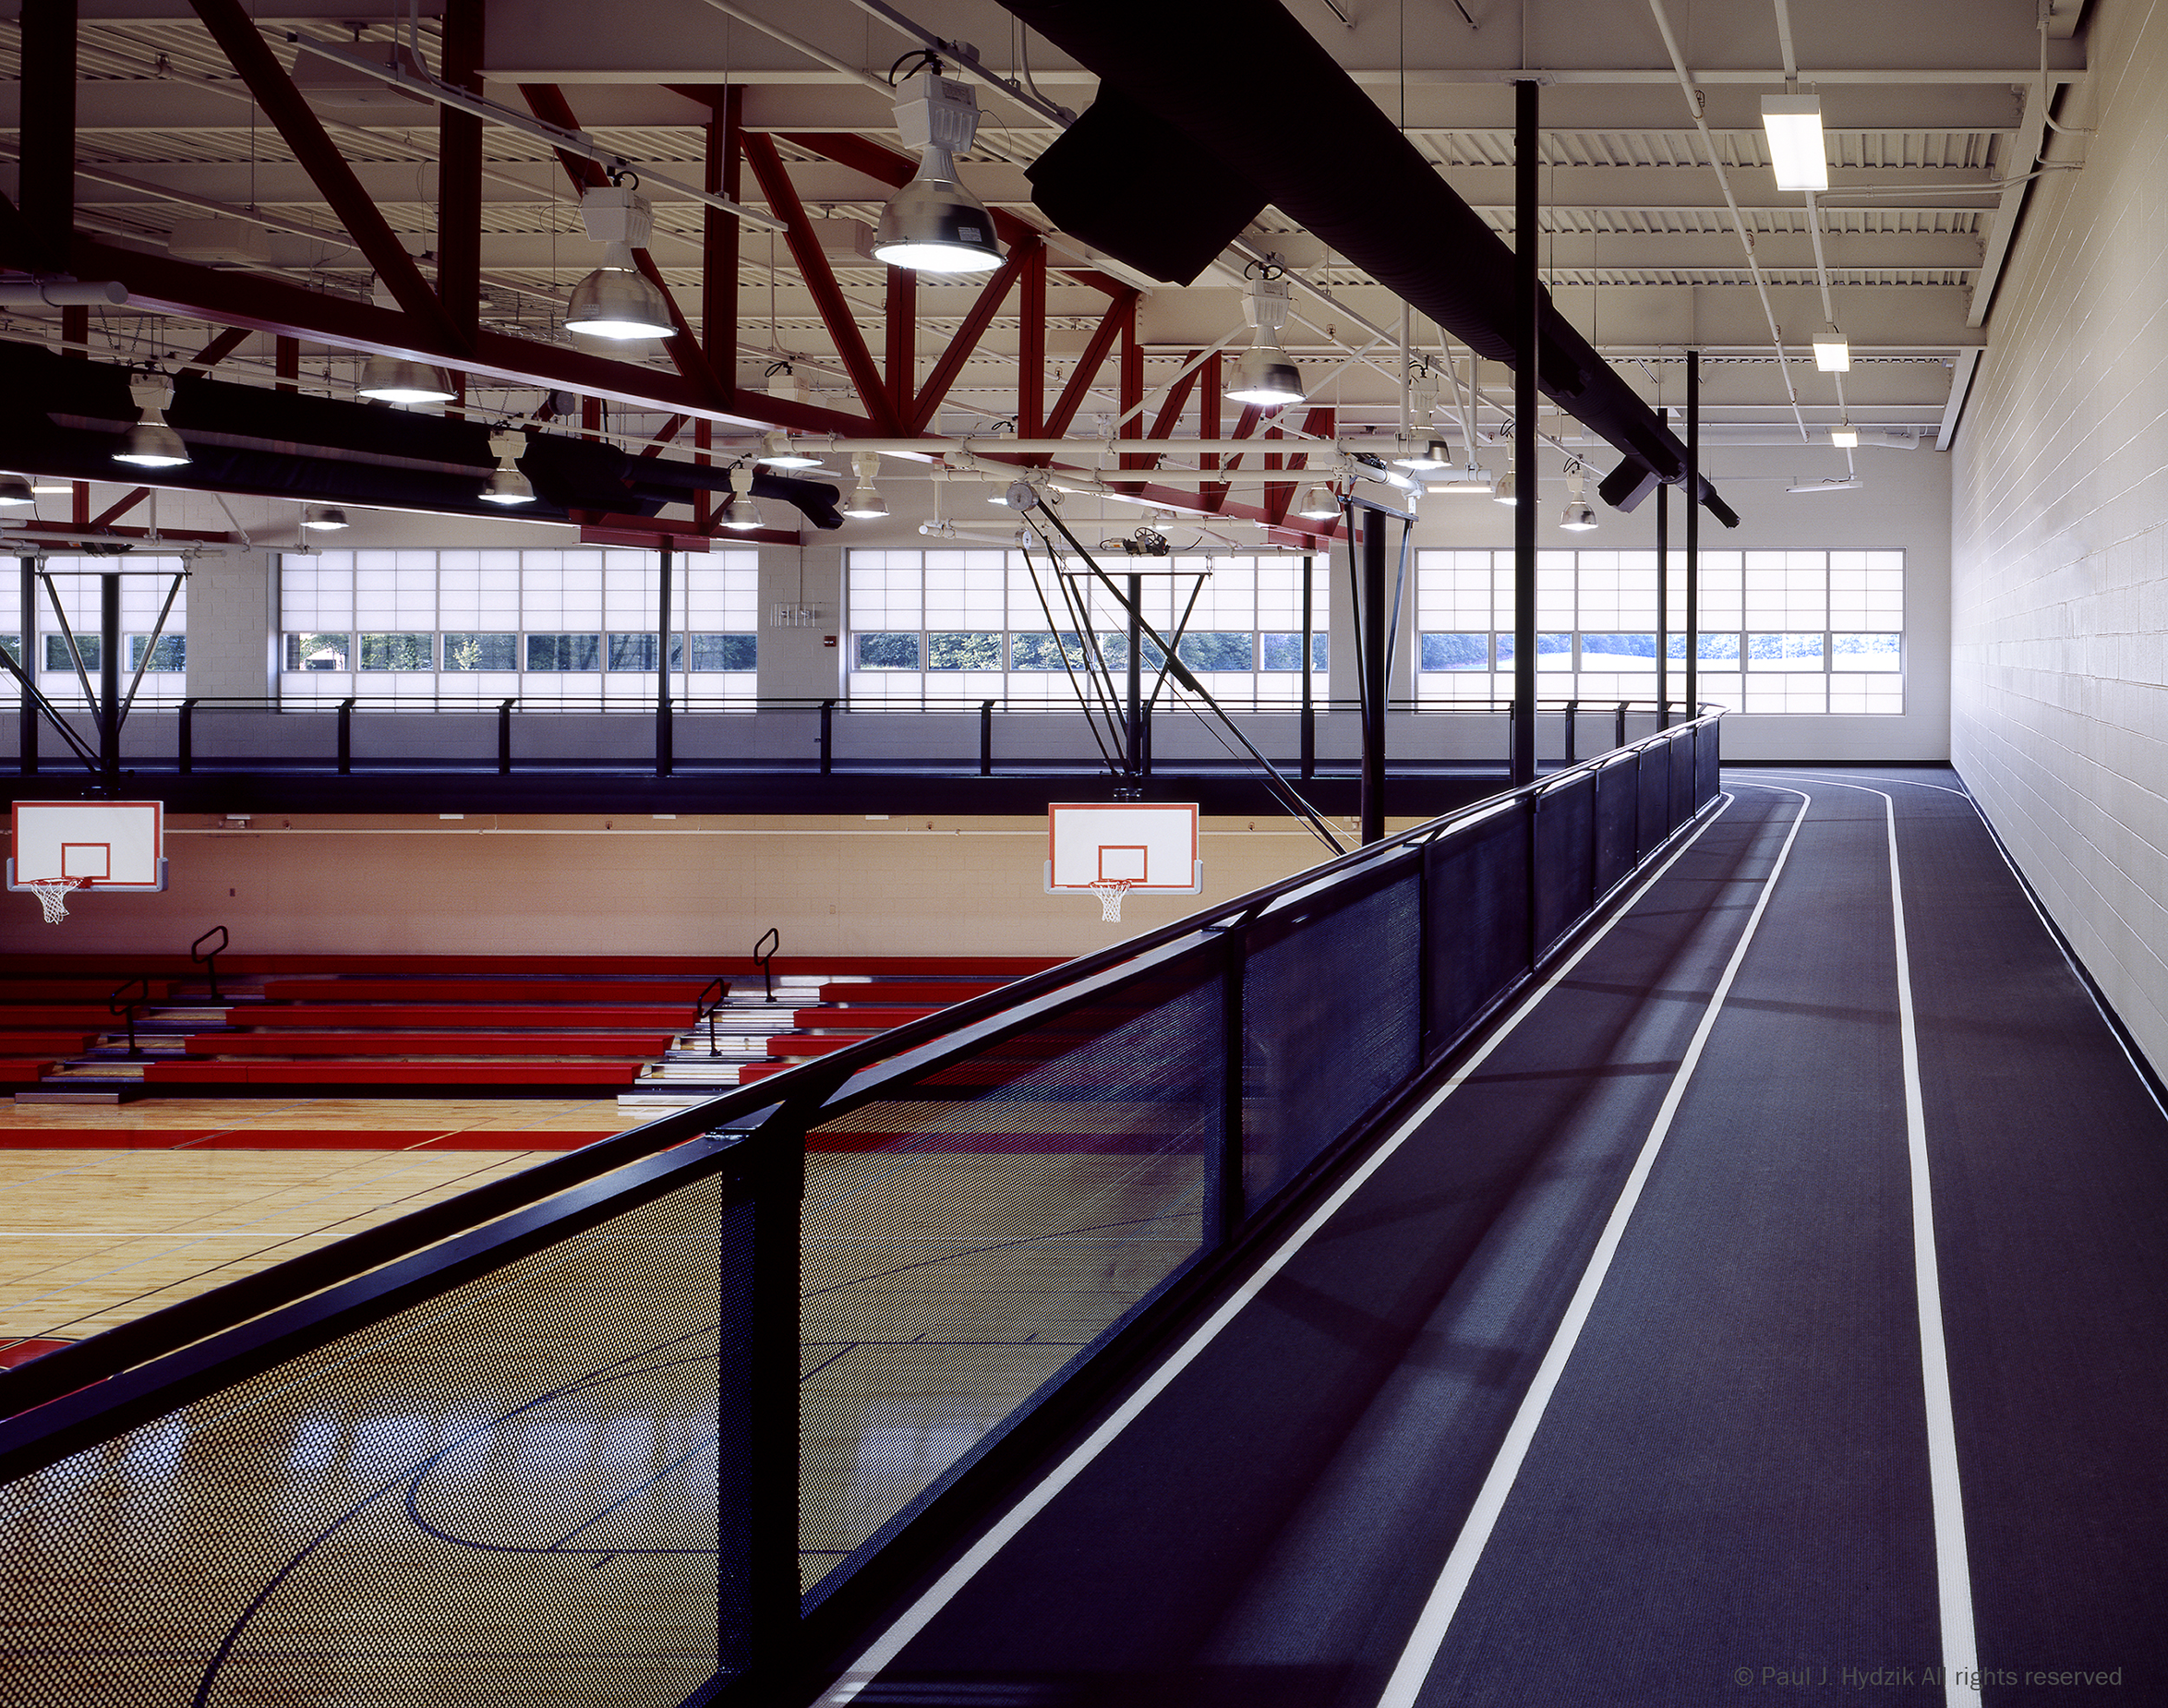 BCA Channahon Field House Track 2500x1970px at 72ppi.jpg